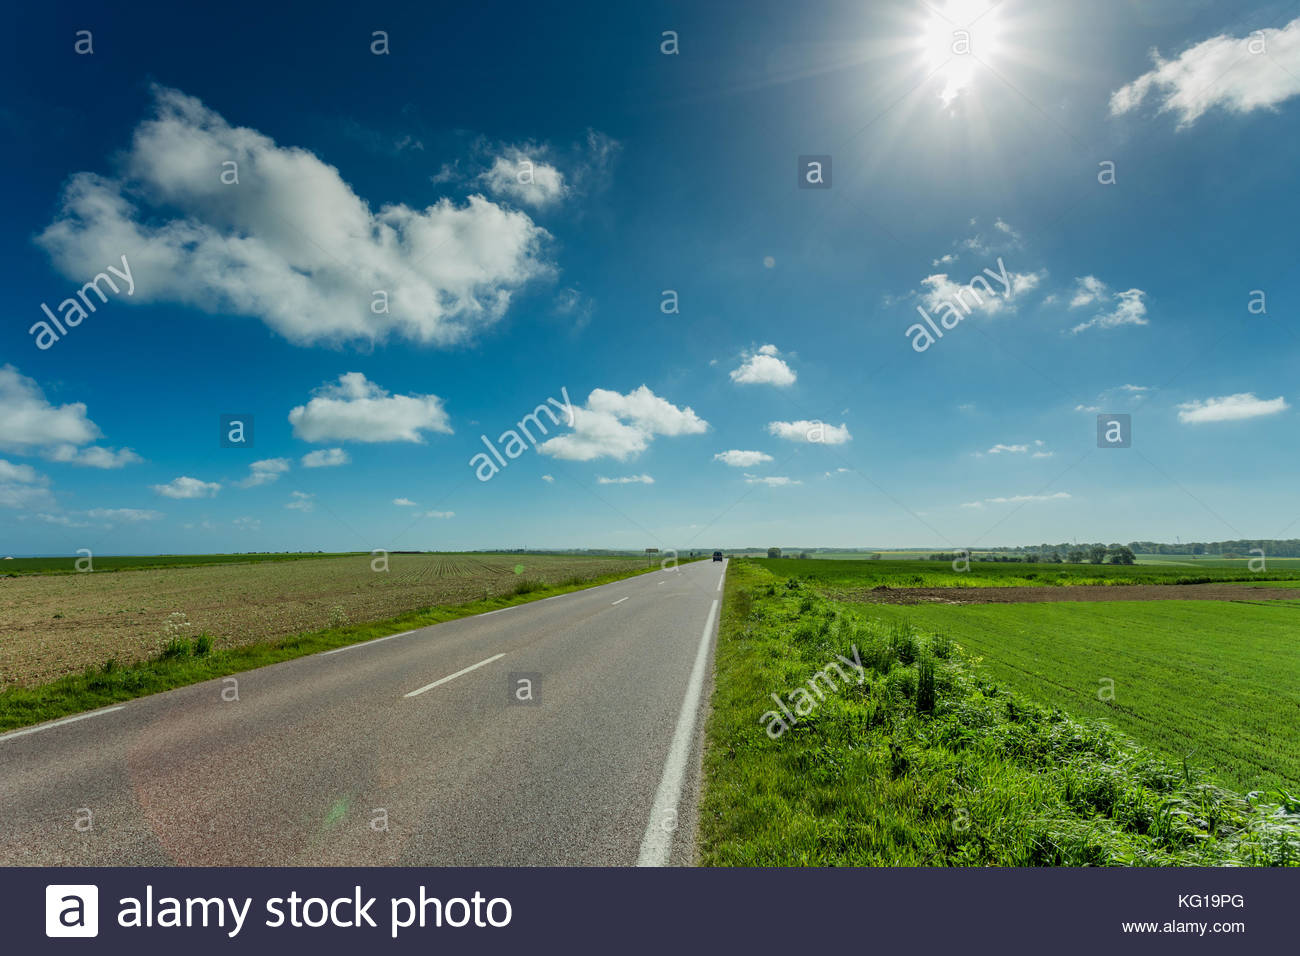 Empty asphalt country road passing through green and flowering agricultural fields. Countryside landscape on a sunny - Stock Image